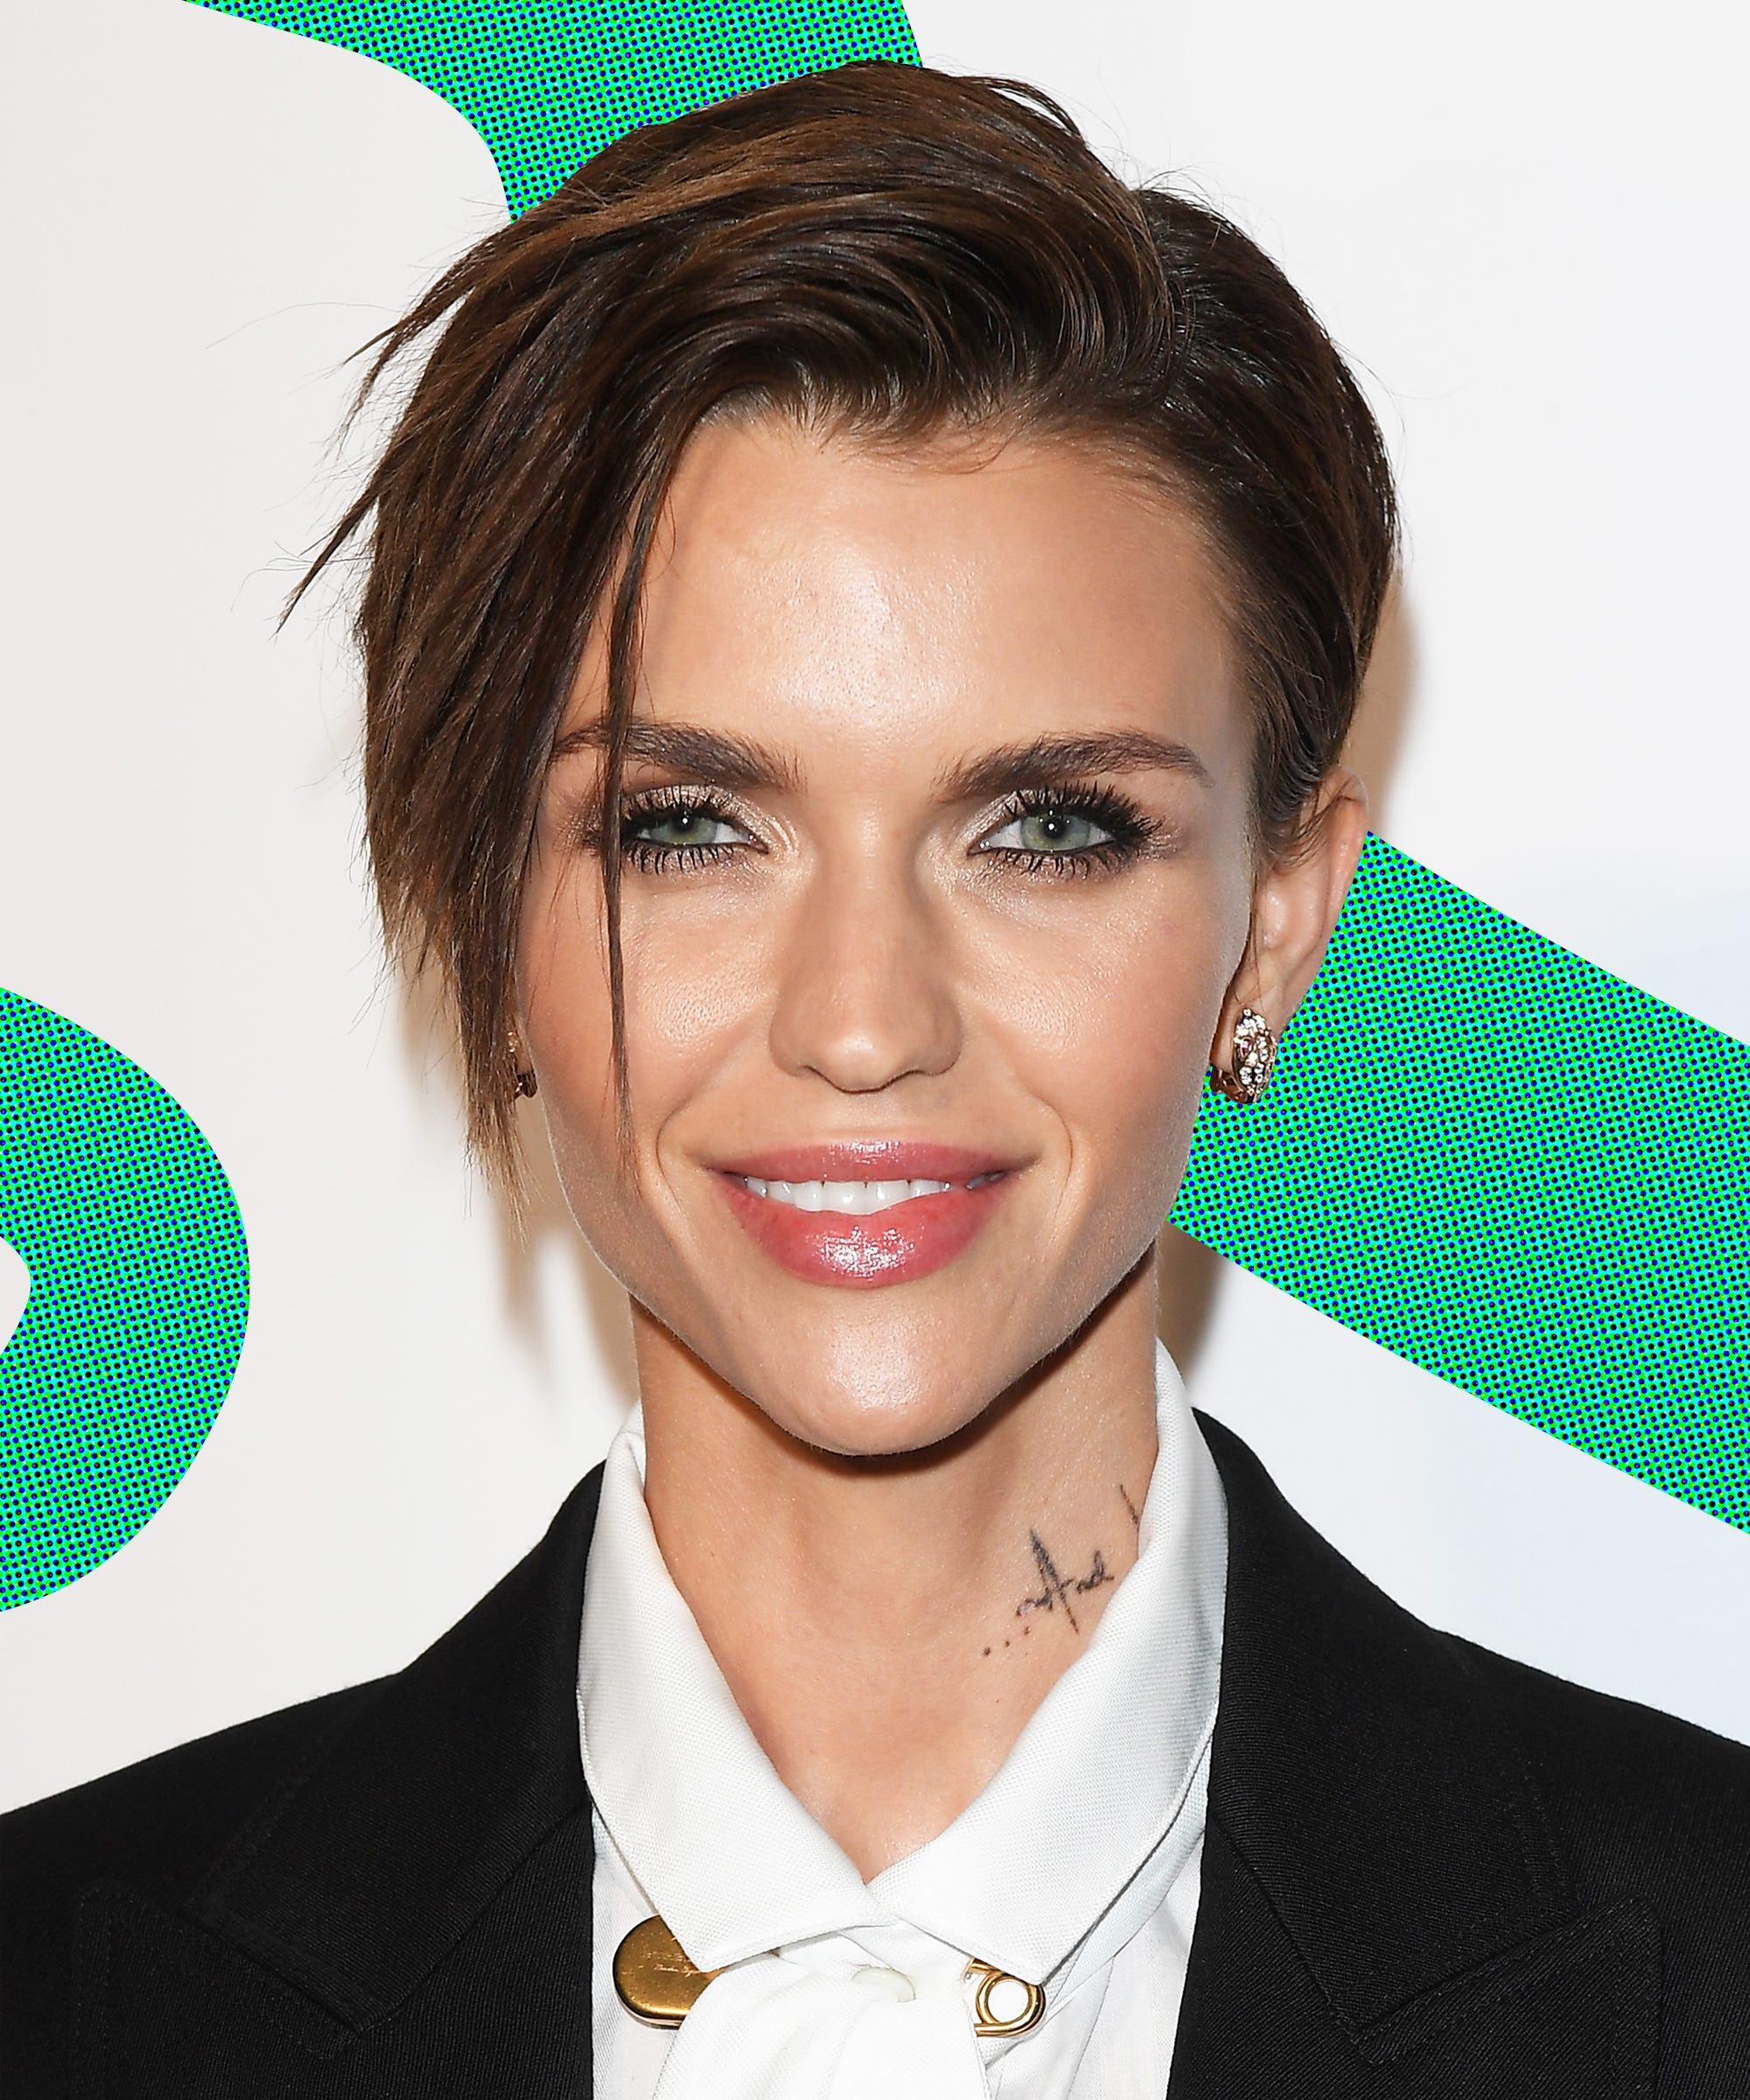 Ruby Rose Quits Twitter Following Trolling About Batwoman